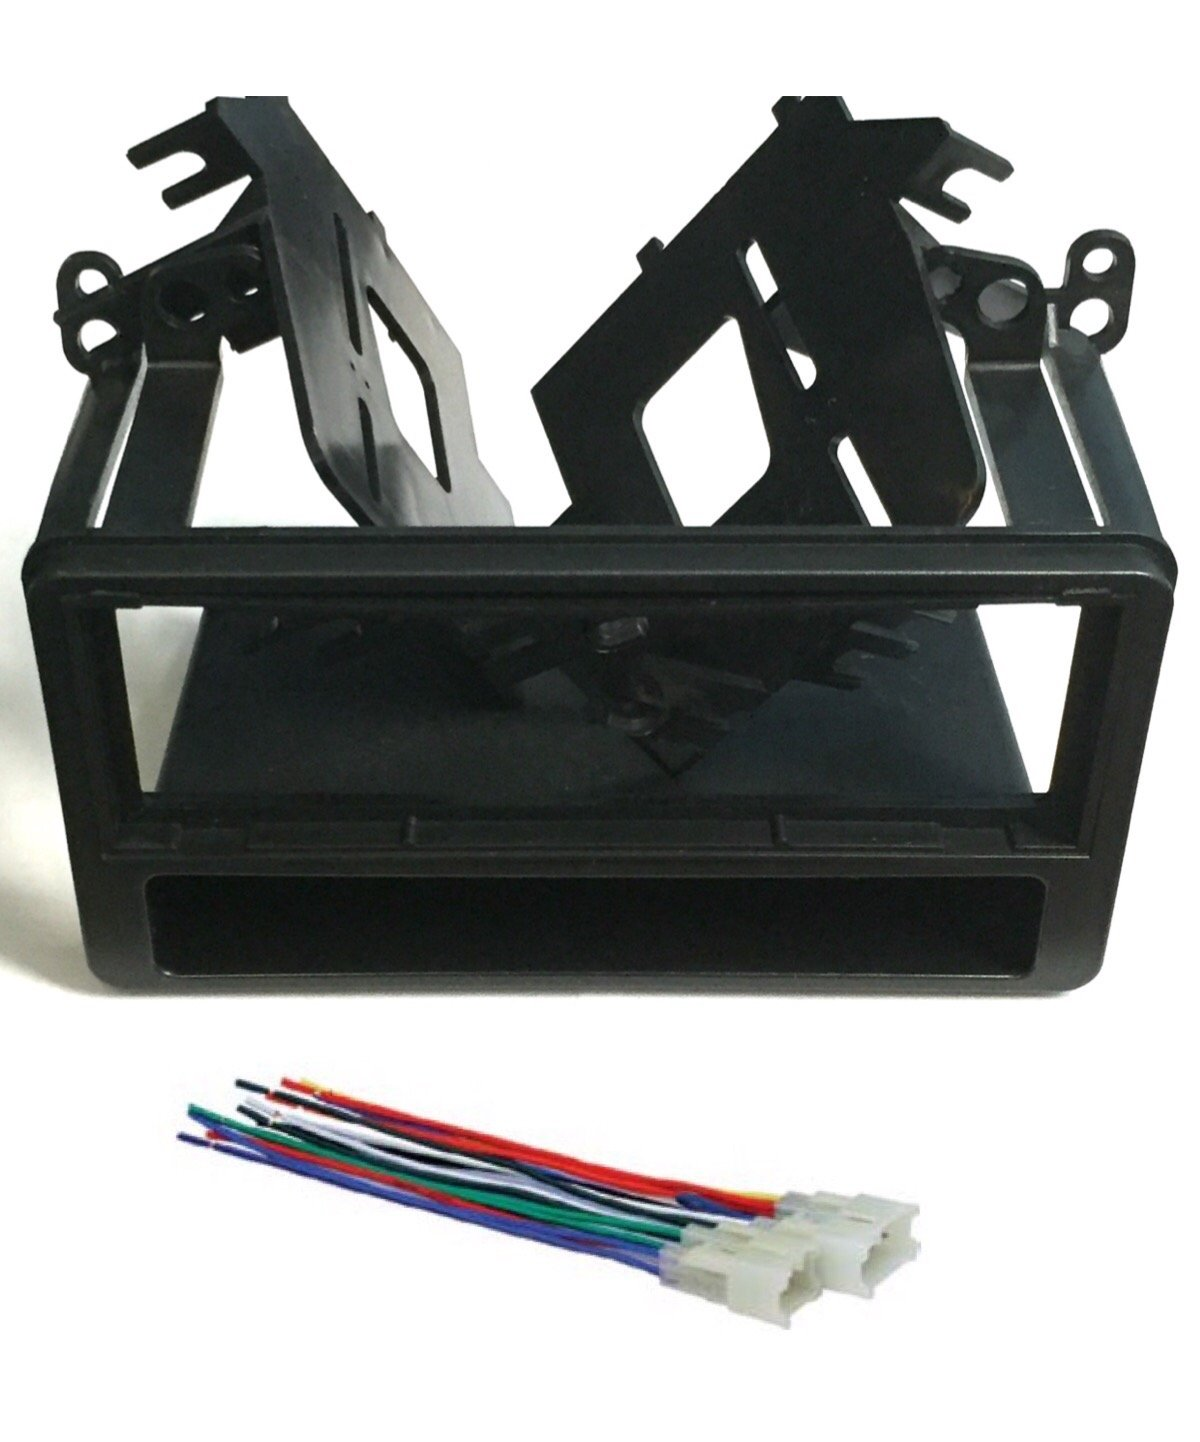 hight resolution of get quotations asc audio car stereo dash kit and wire harness for installing a single din radio for